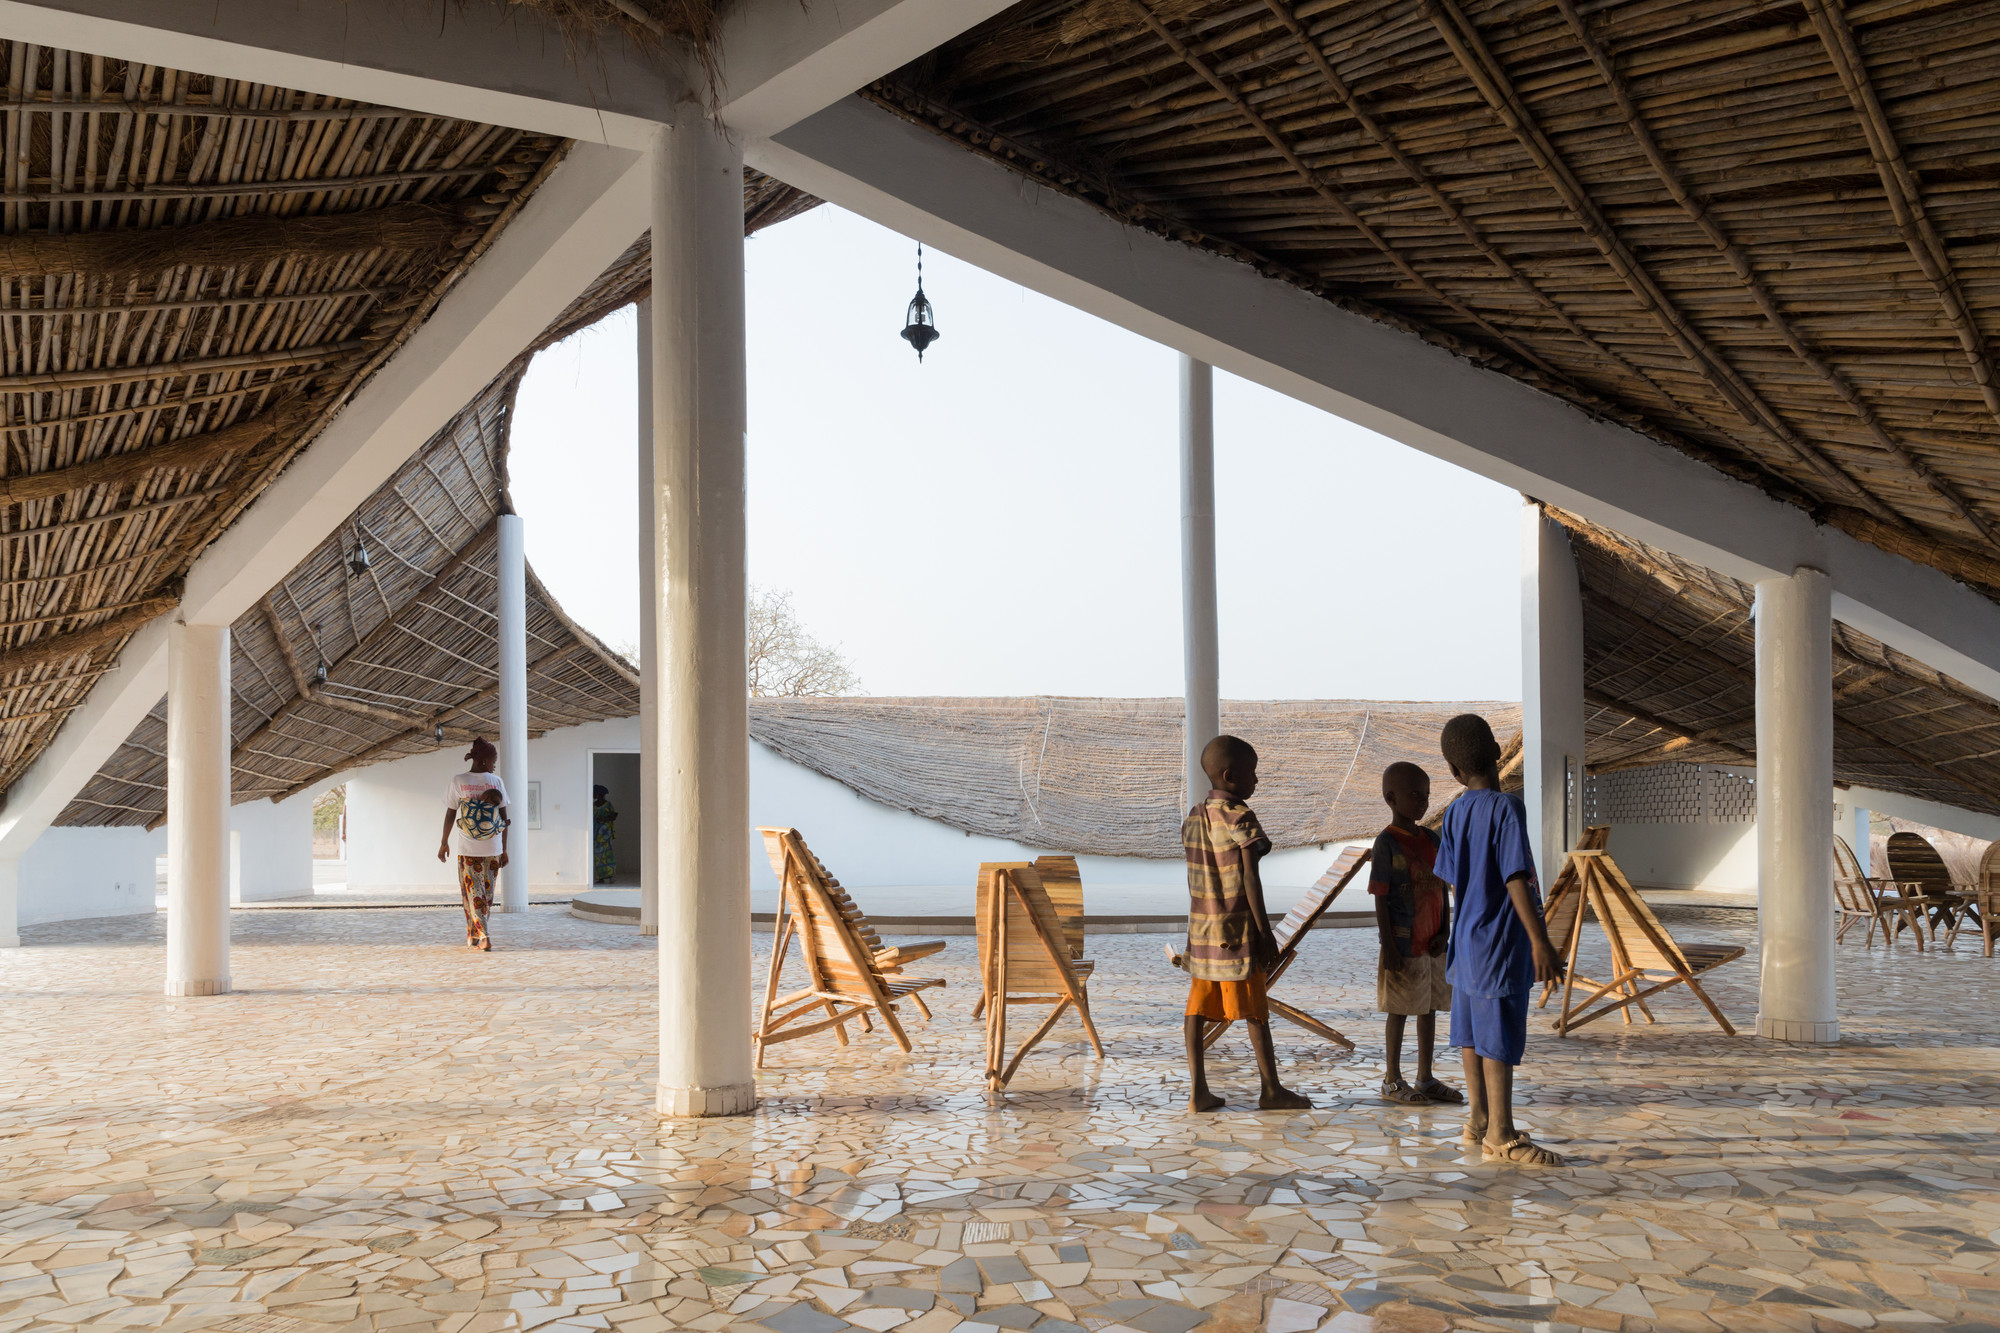 New Artist Residency In Senegal / Toshiko Mori, © Iwan Baan